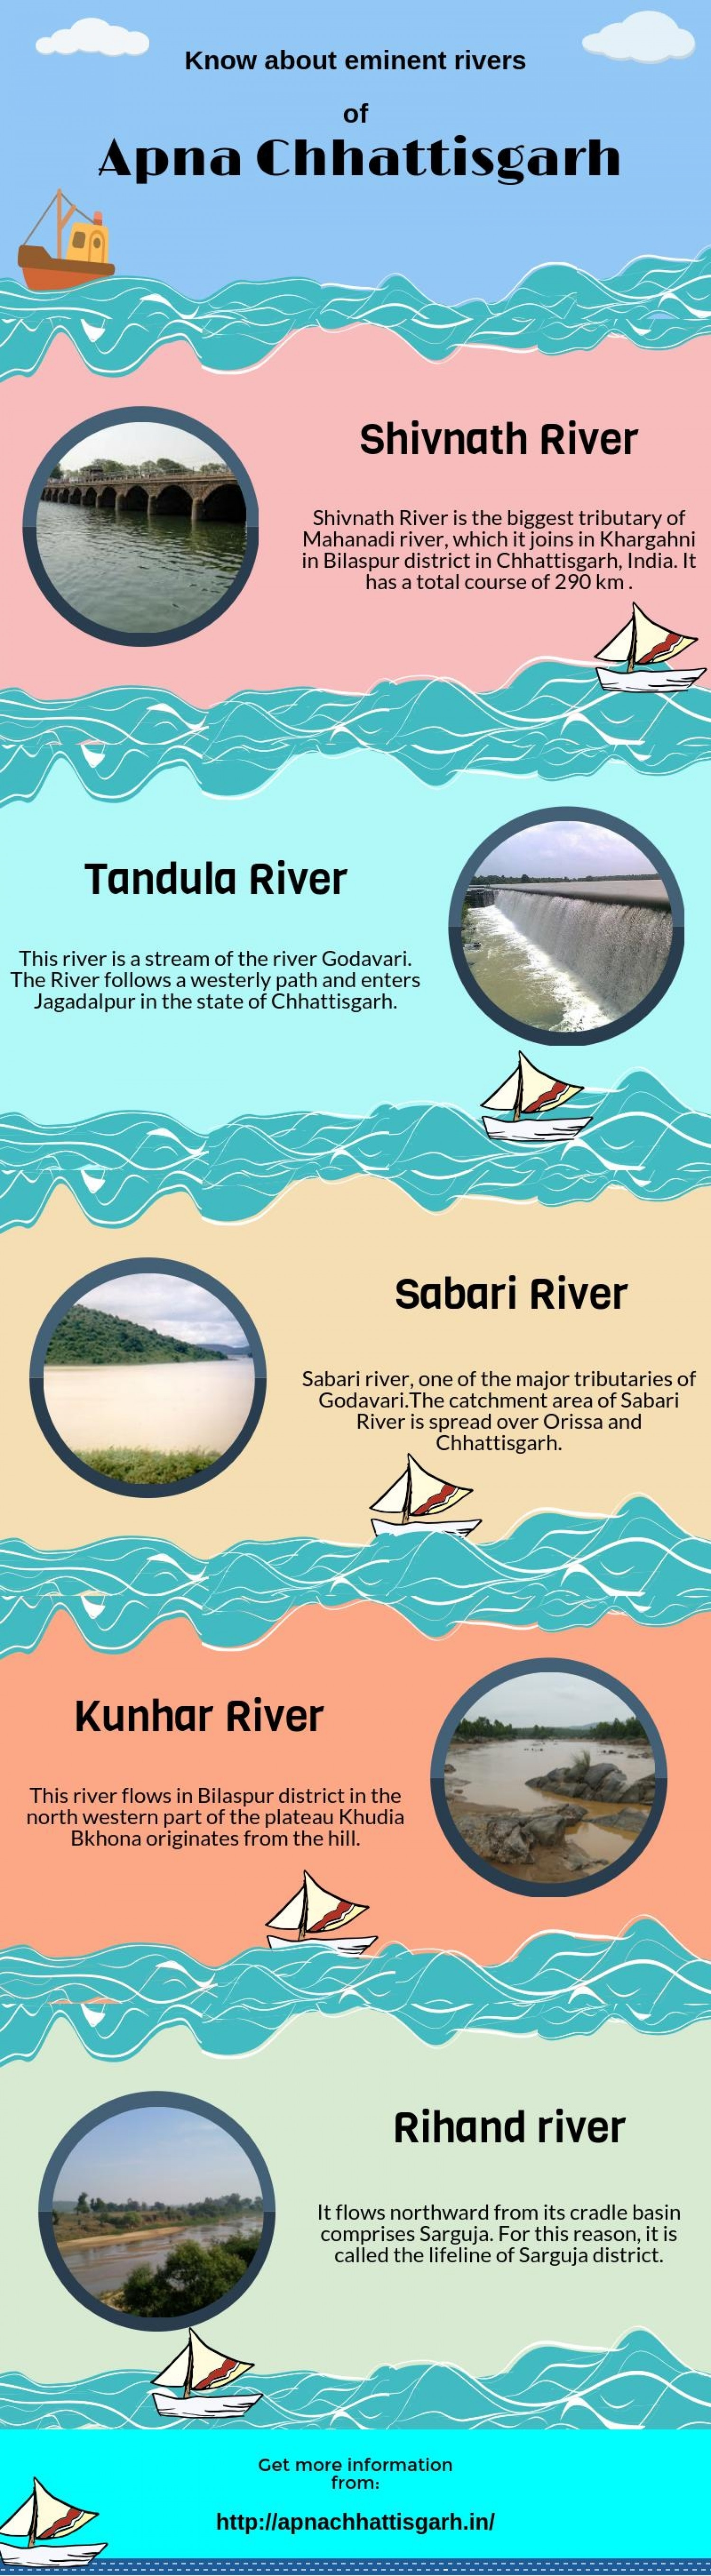 Rivers of Apna Chhattisgarh Infographic